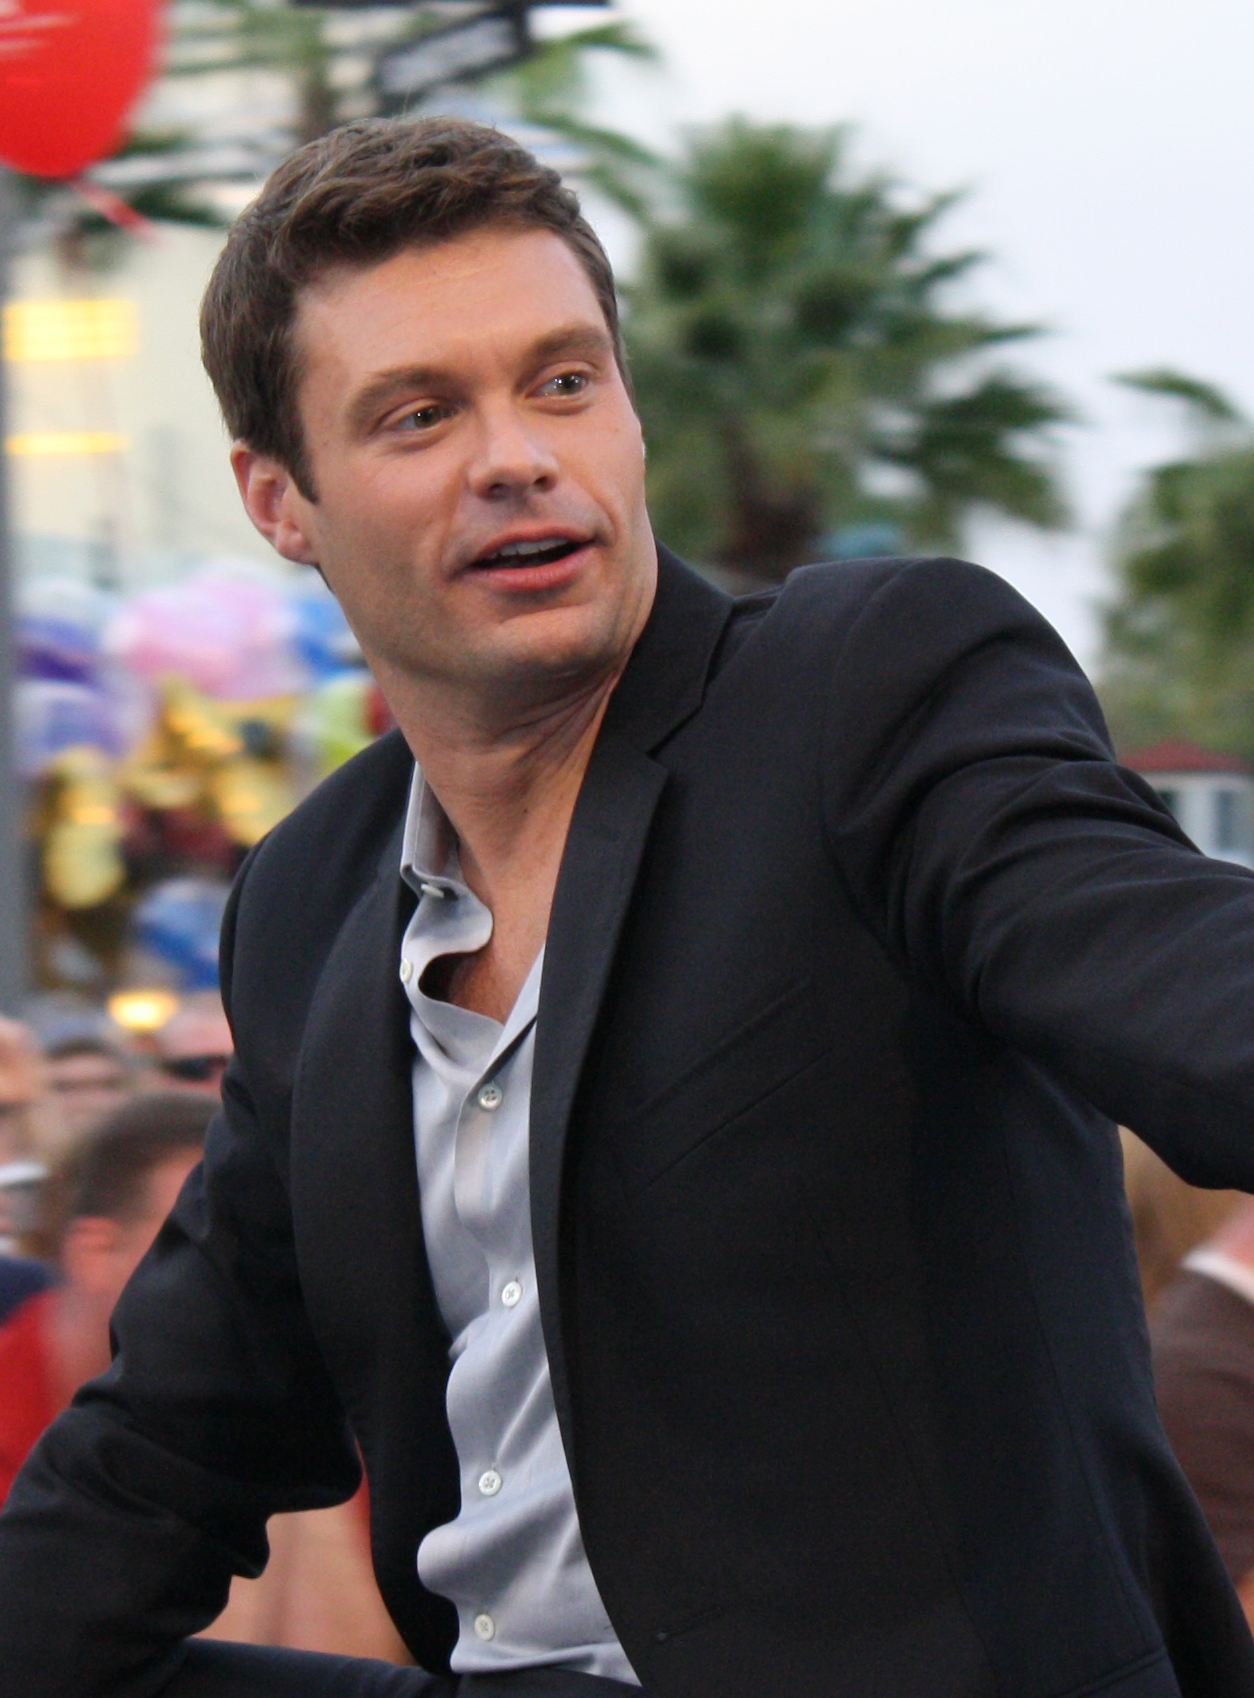 http://upload.wikimedia.org/wikipedia/commons/7/7b/Ryan_Seacrest_in_parade.jpg